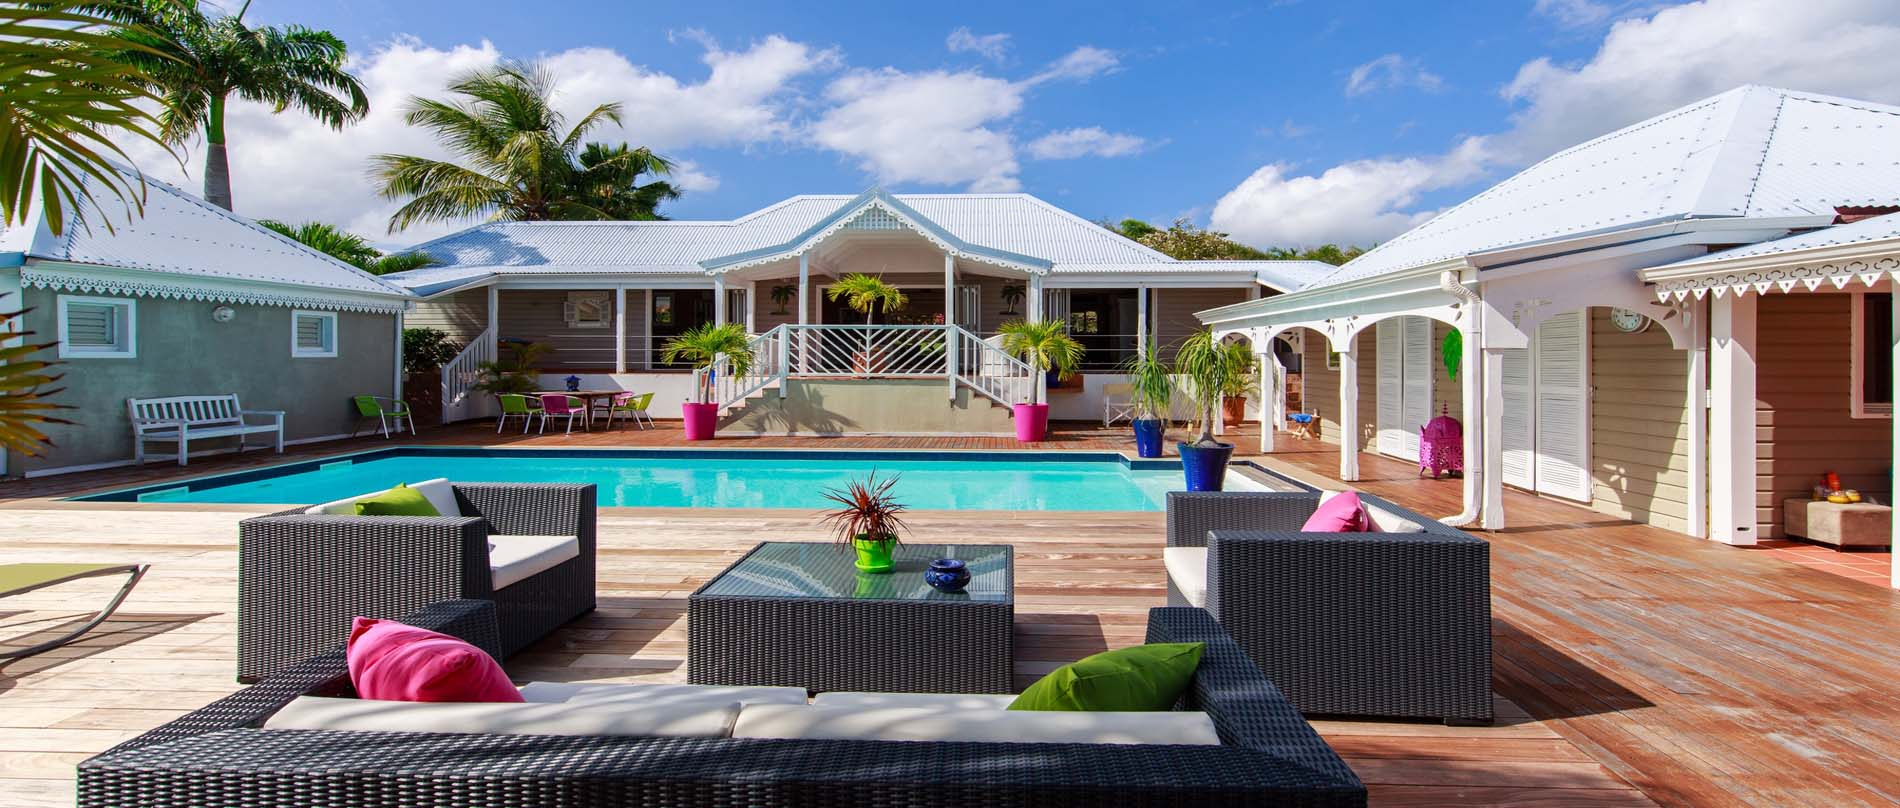 Takara Villa - For Sale in St. Martin | MAC Caribbean Villas